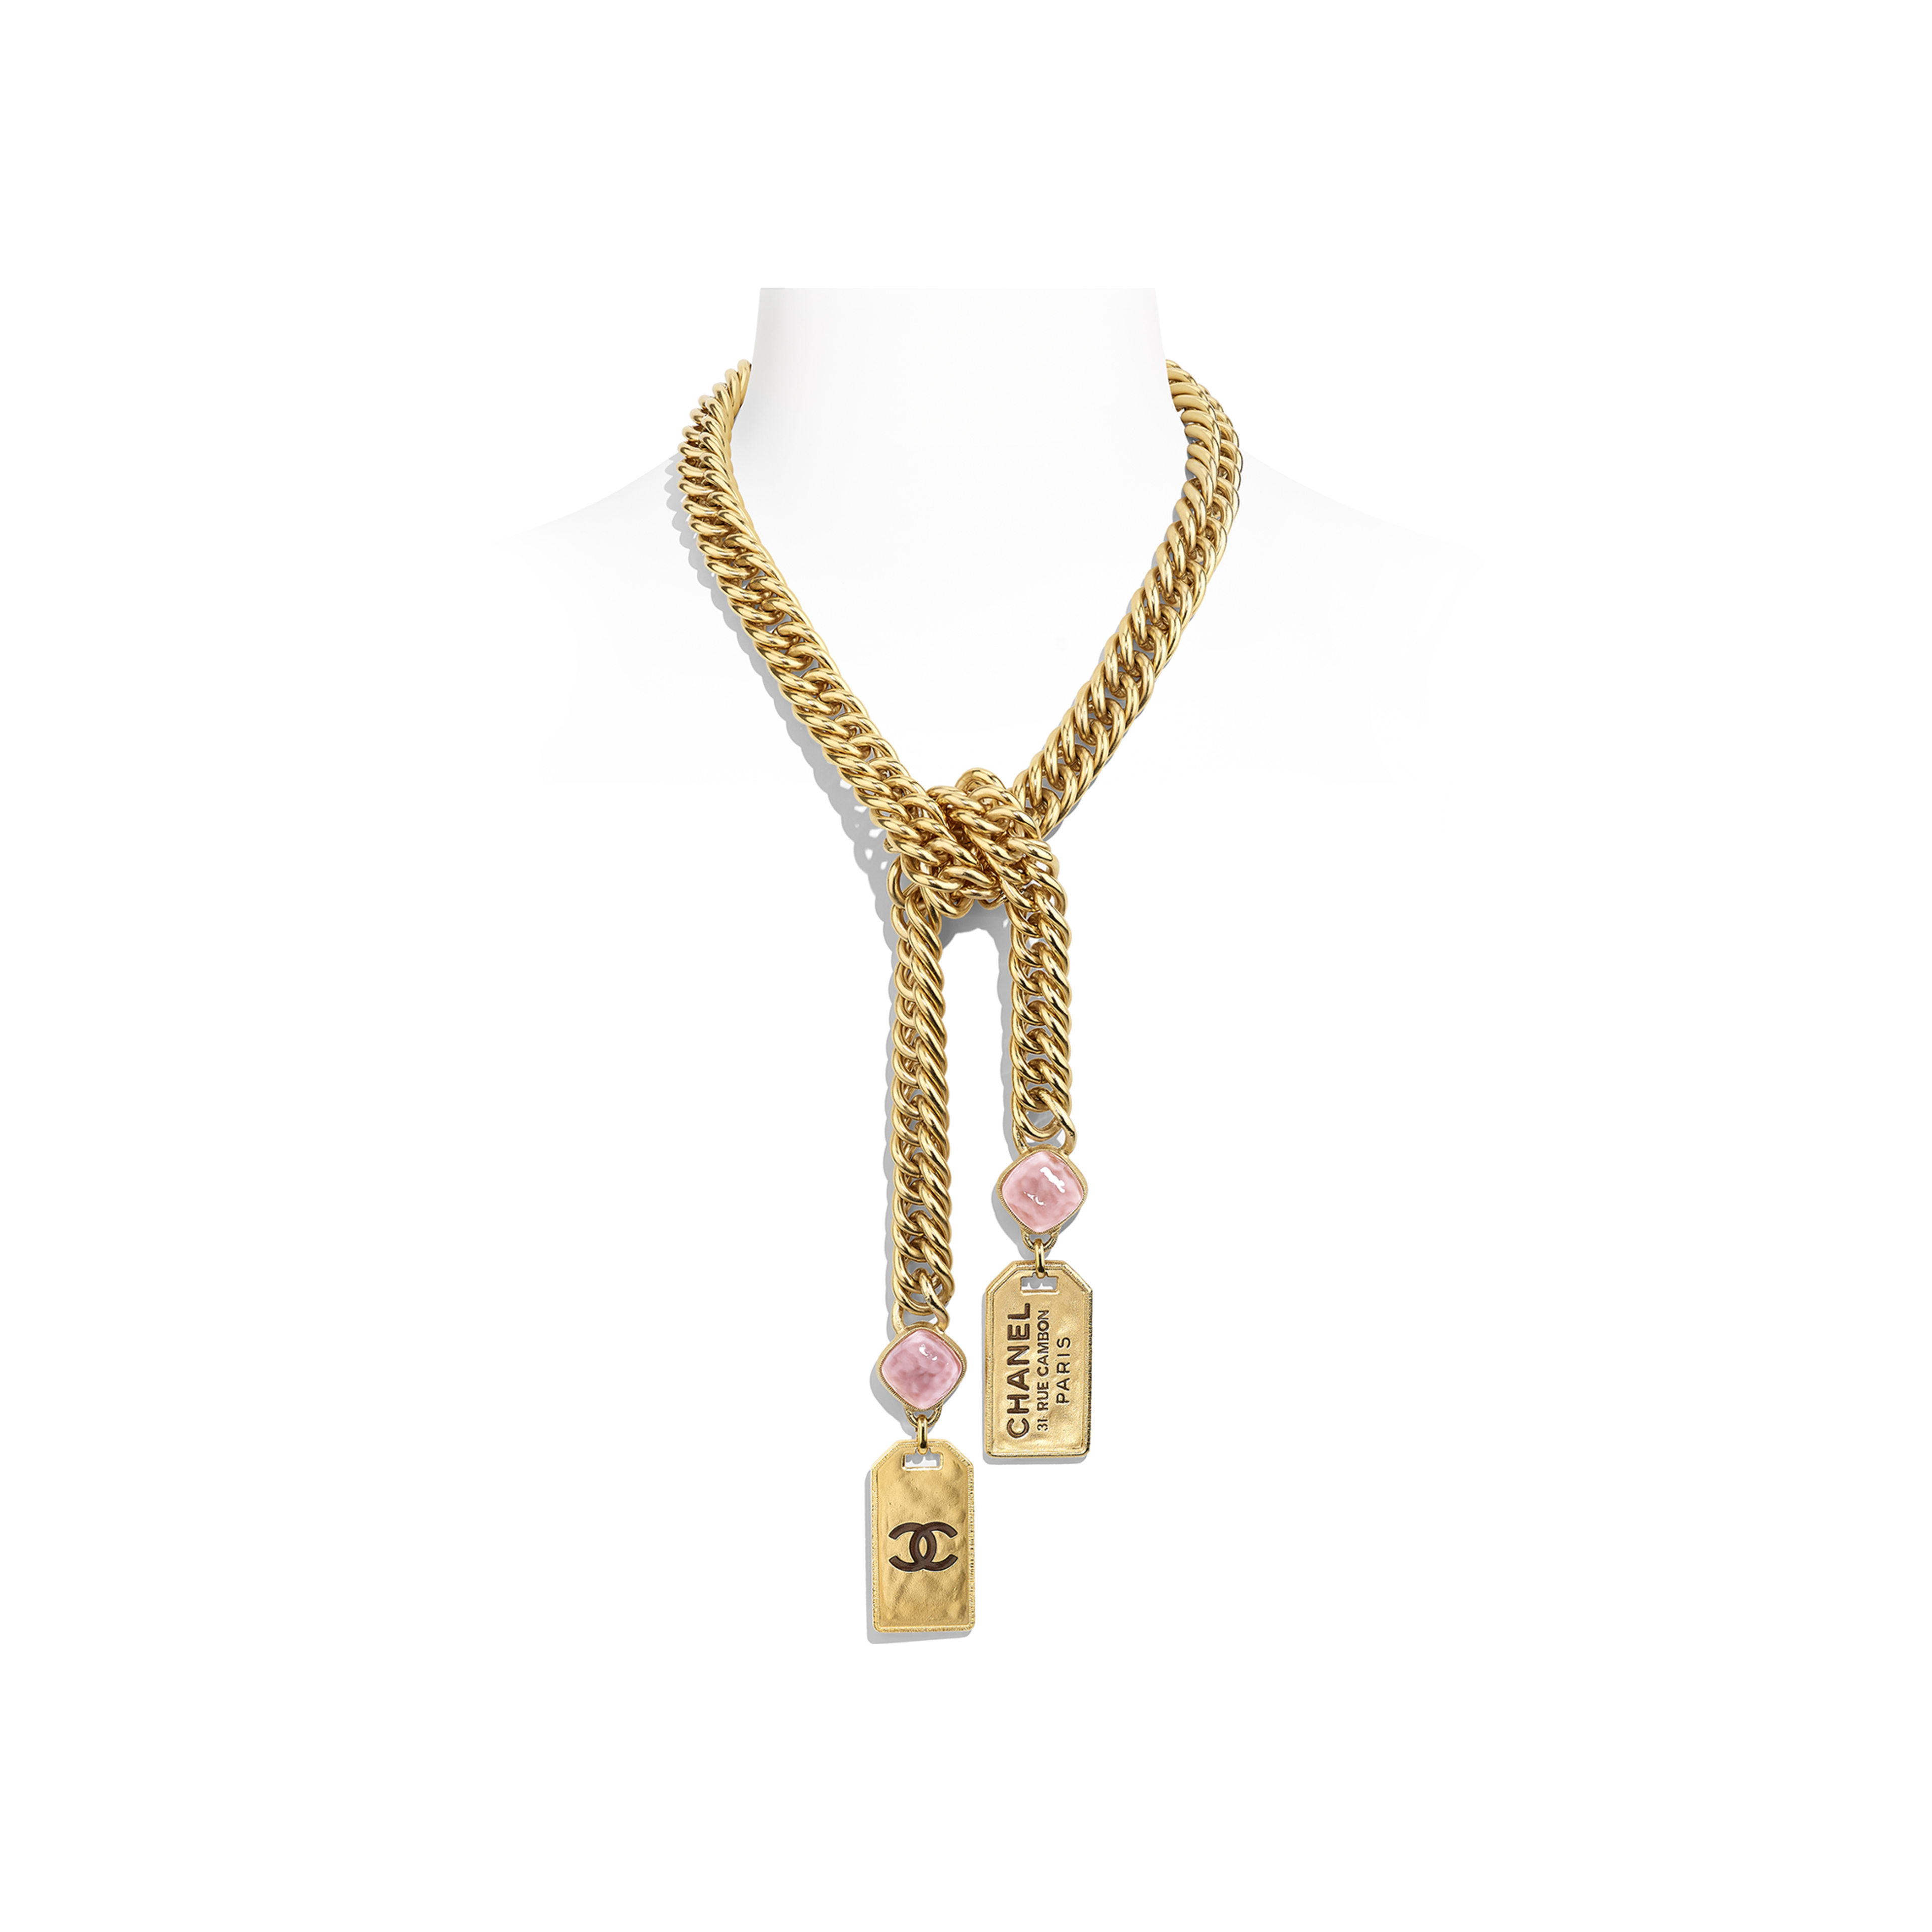 Necklace - Gold & Pink - Metal & Glass - Default view - see full sized version